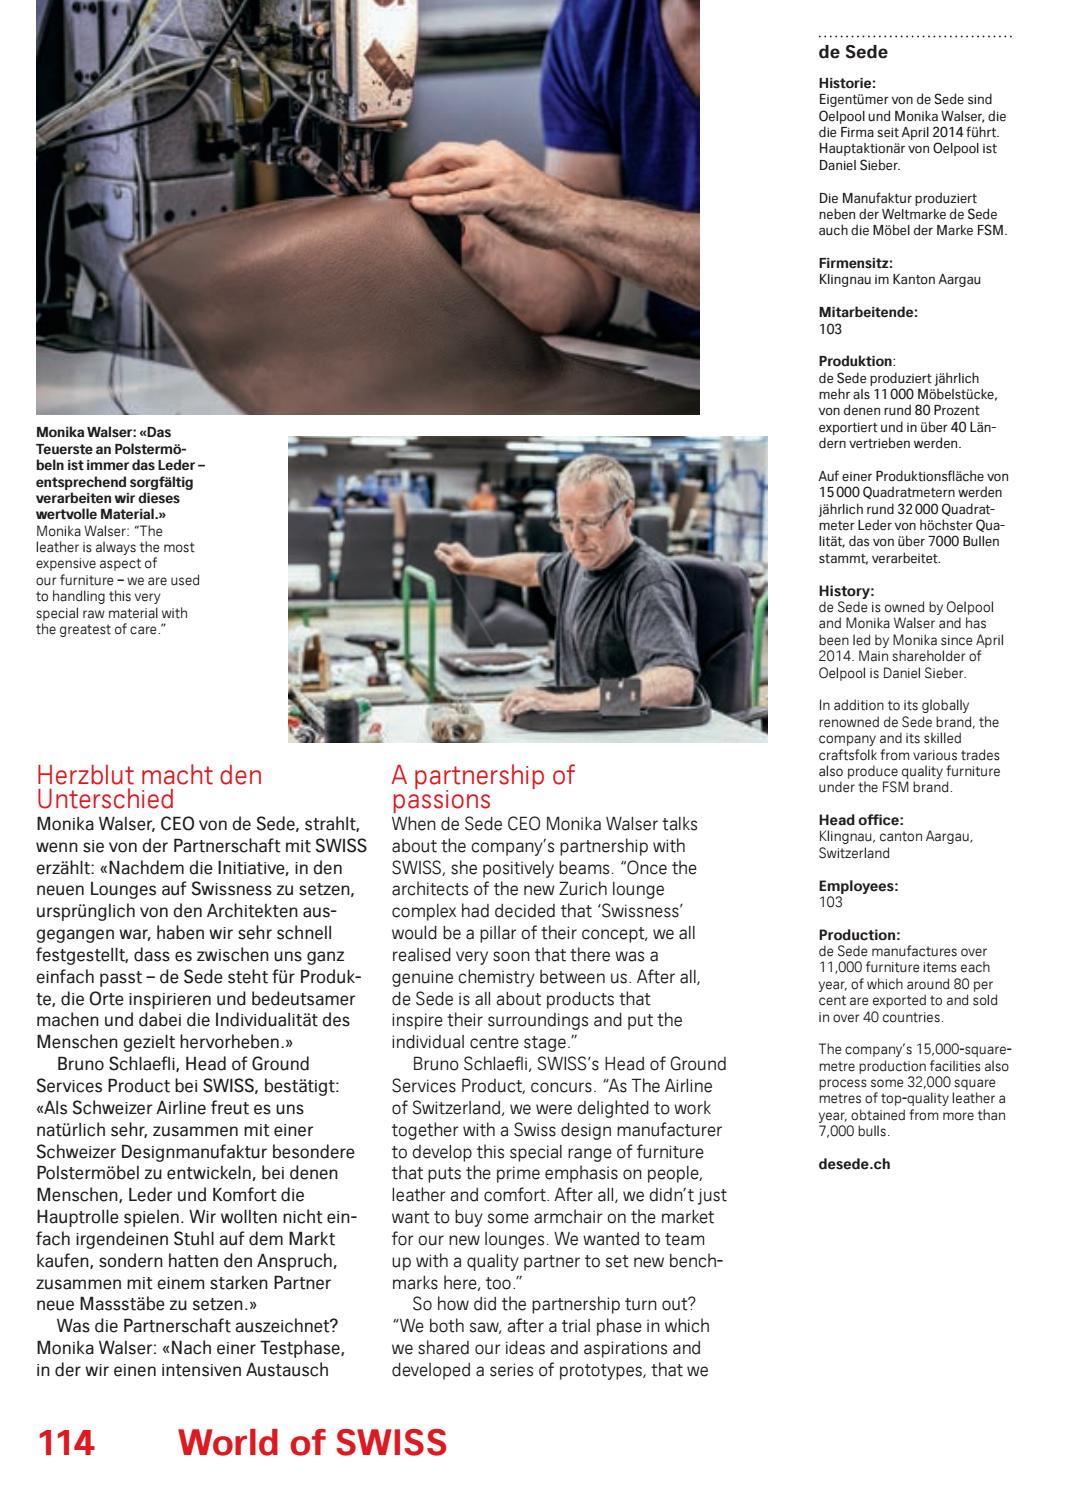 SWISS Magazine September 2016 - SHANGHAI by Inflight Magazines by ...